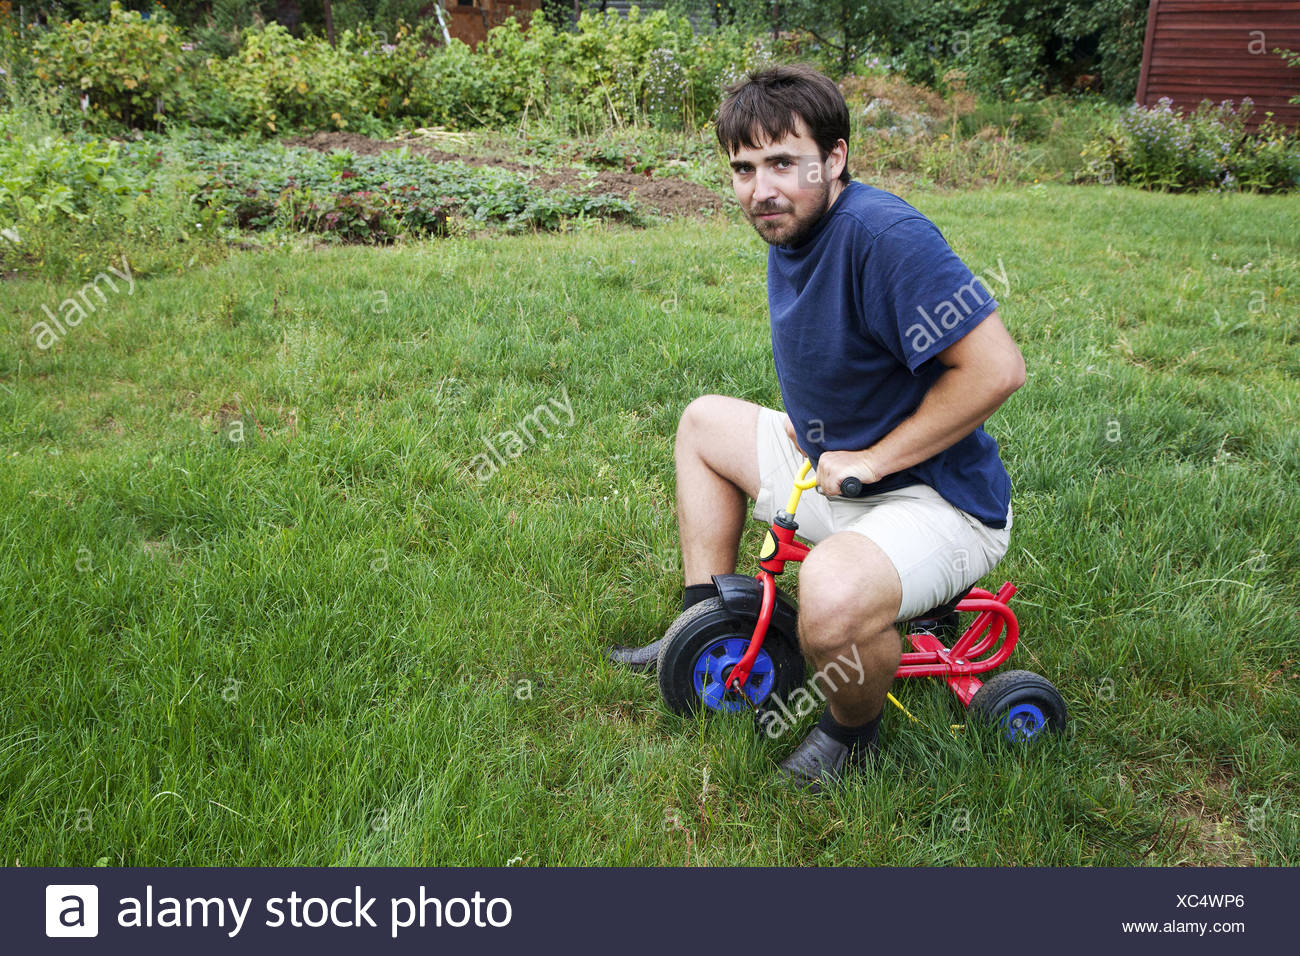 Adult man tying to ride on a small tricycle - Stock Image